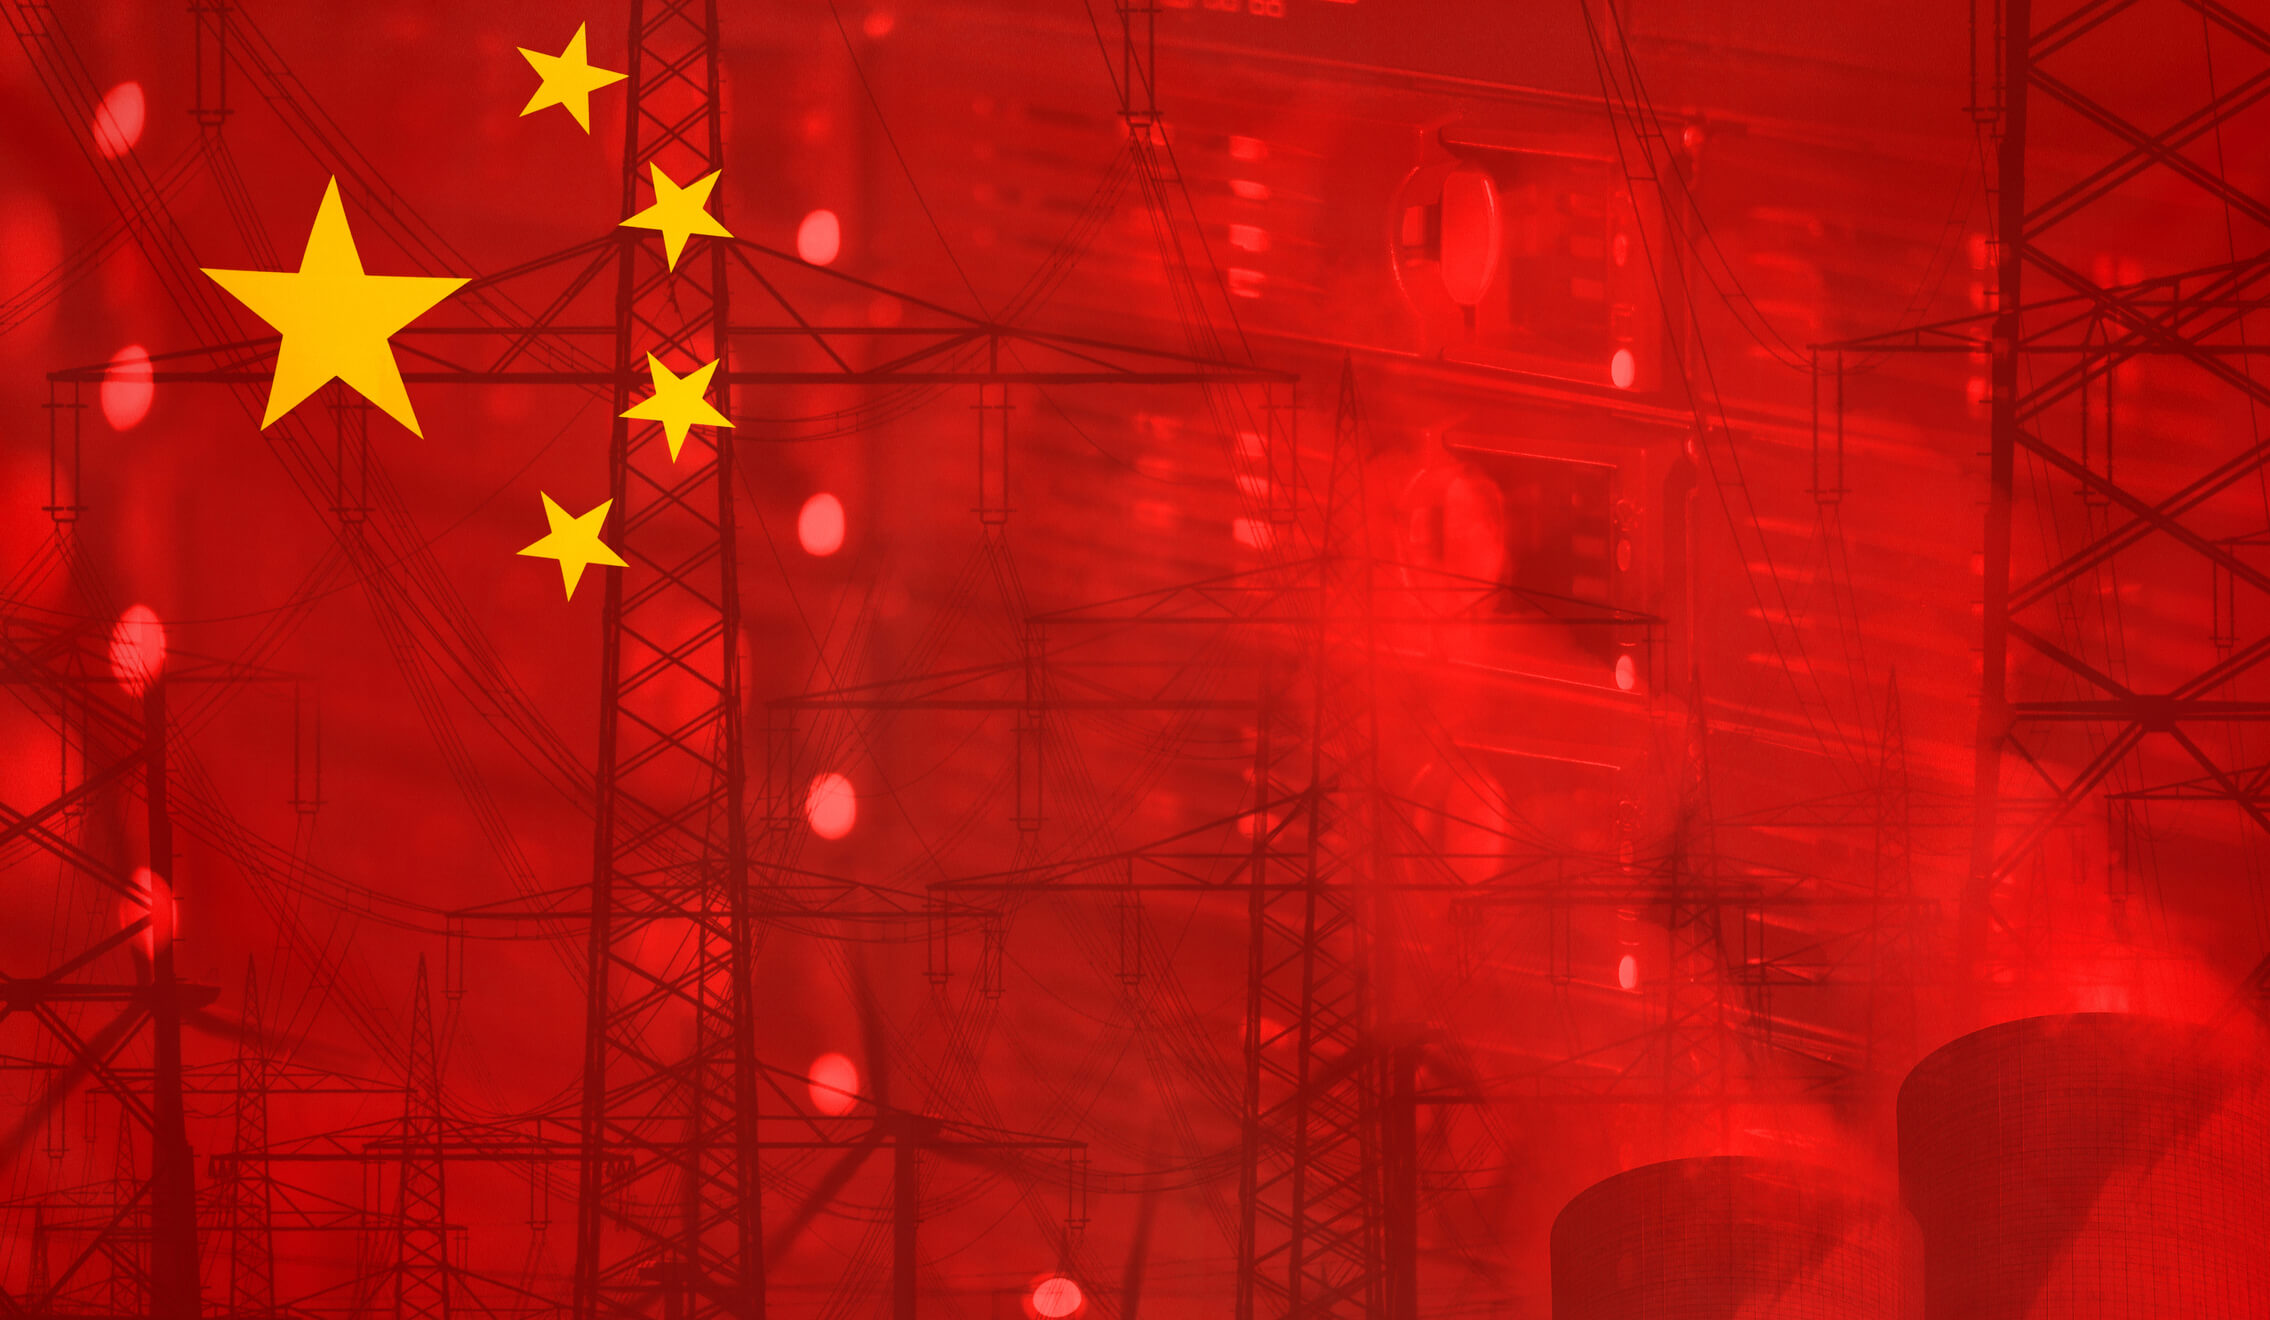 Unsecured Chinese companies leak users' sensitive personal and business data